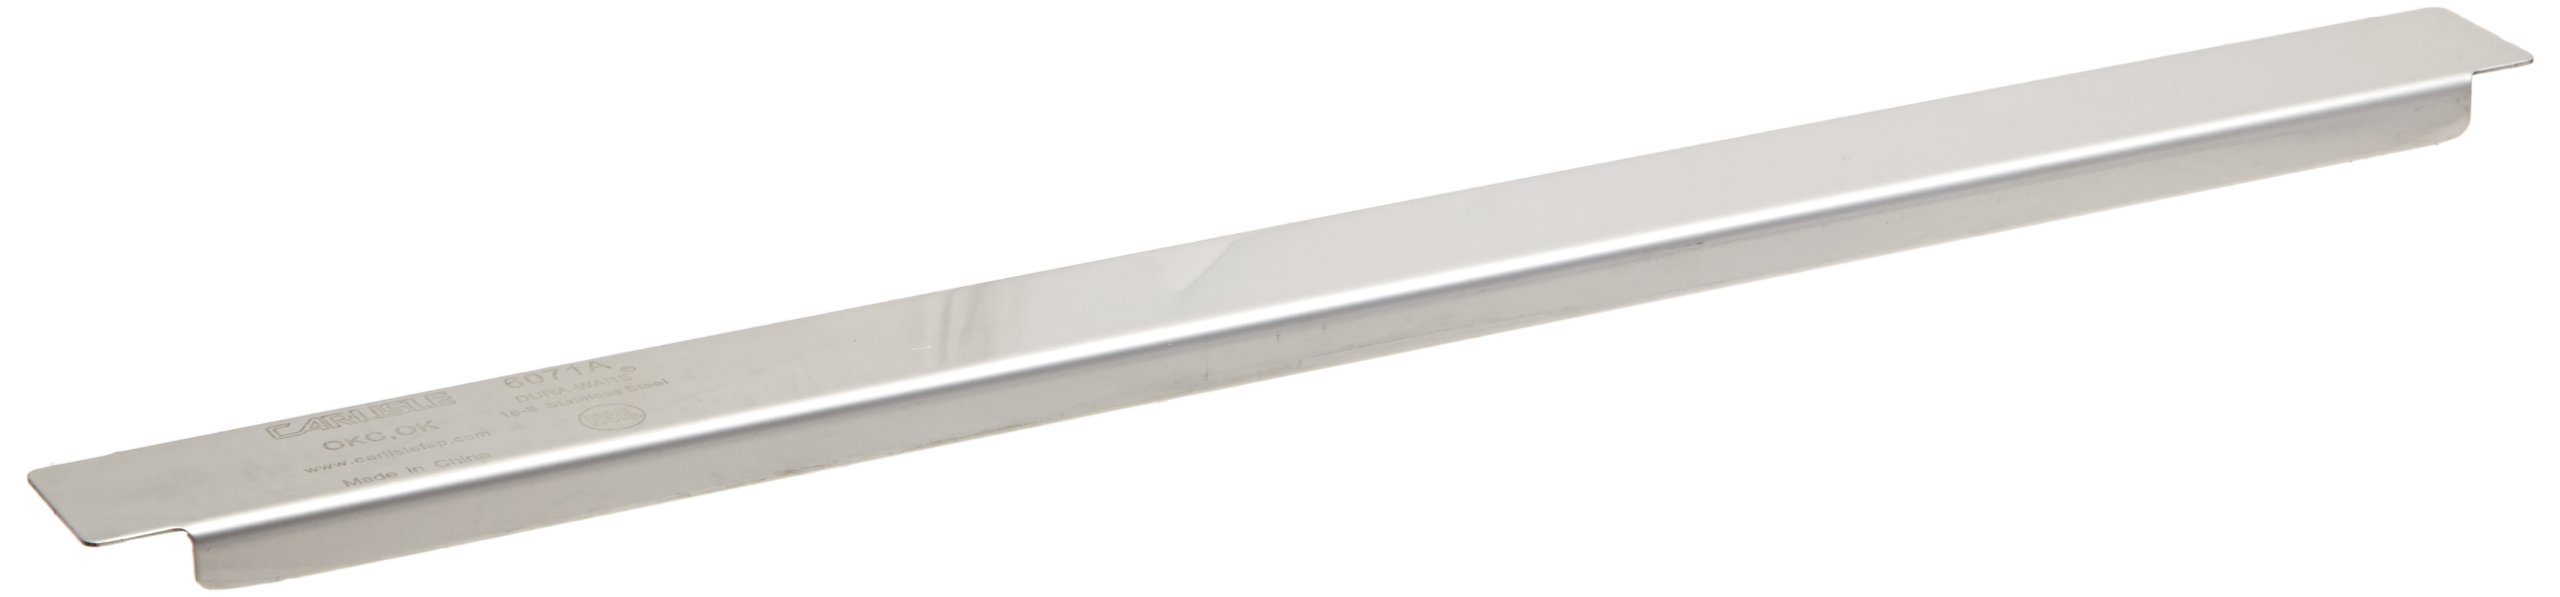 Carlisle 6071A DuraPan Stainless Steel Steam Table Pan Adapter Bar, 12.75'' Long (Pack of 12)